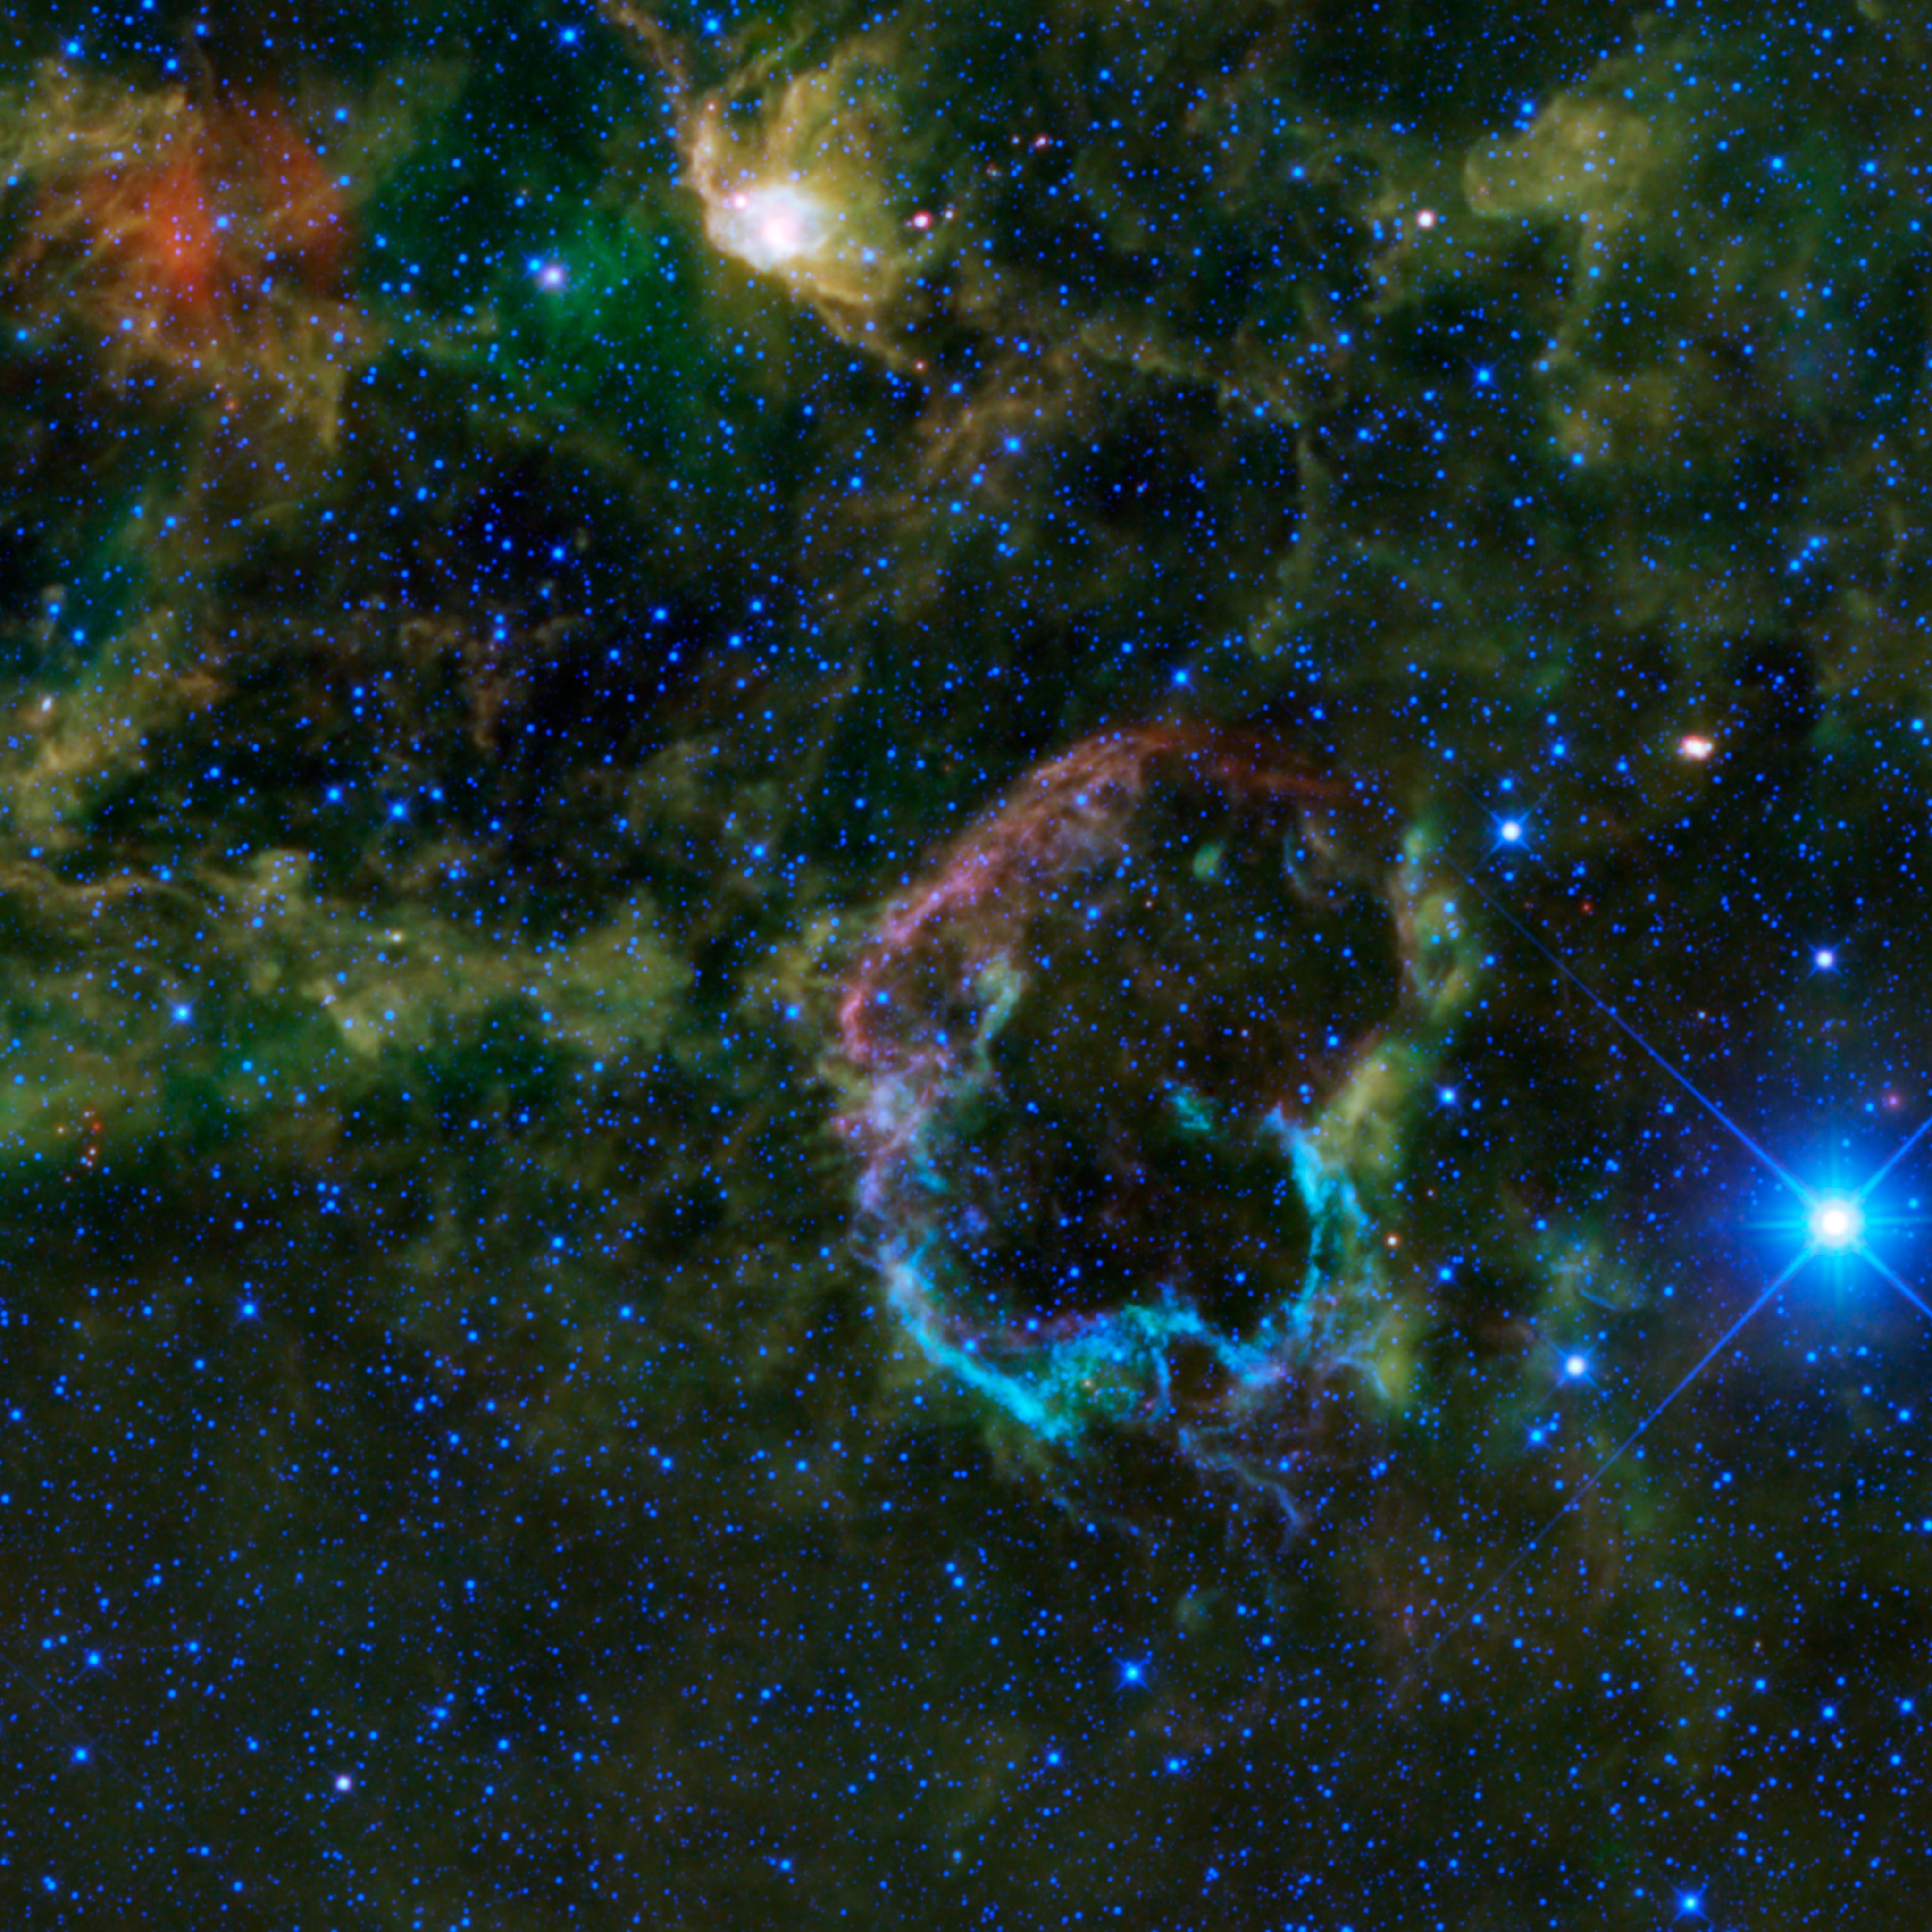 Space Images | An Explosion of Infrared Color